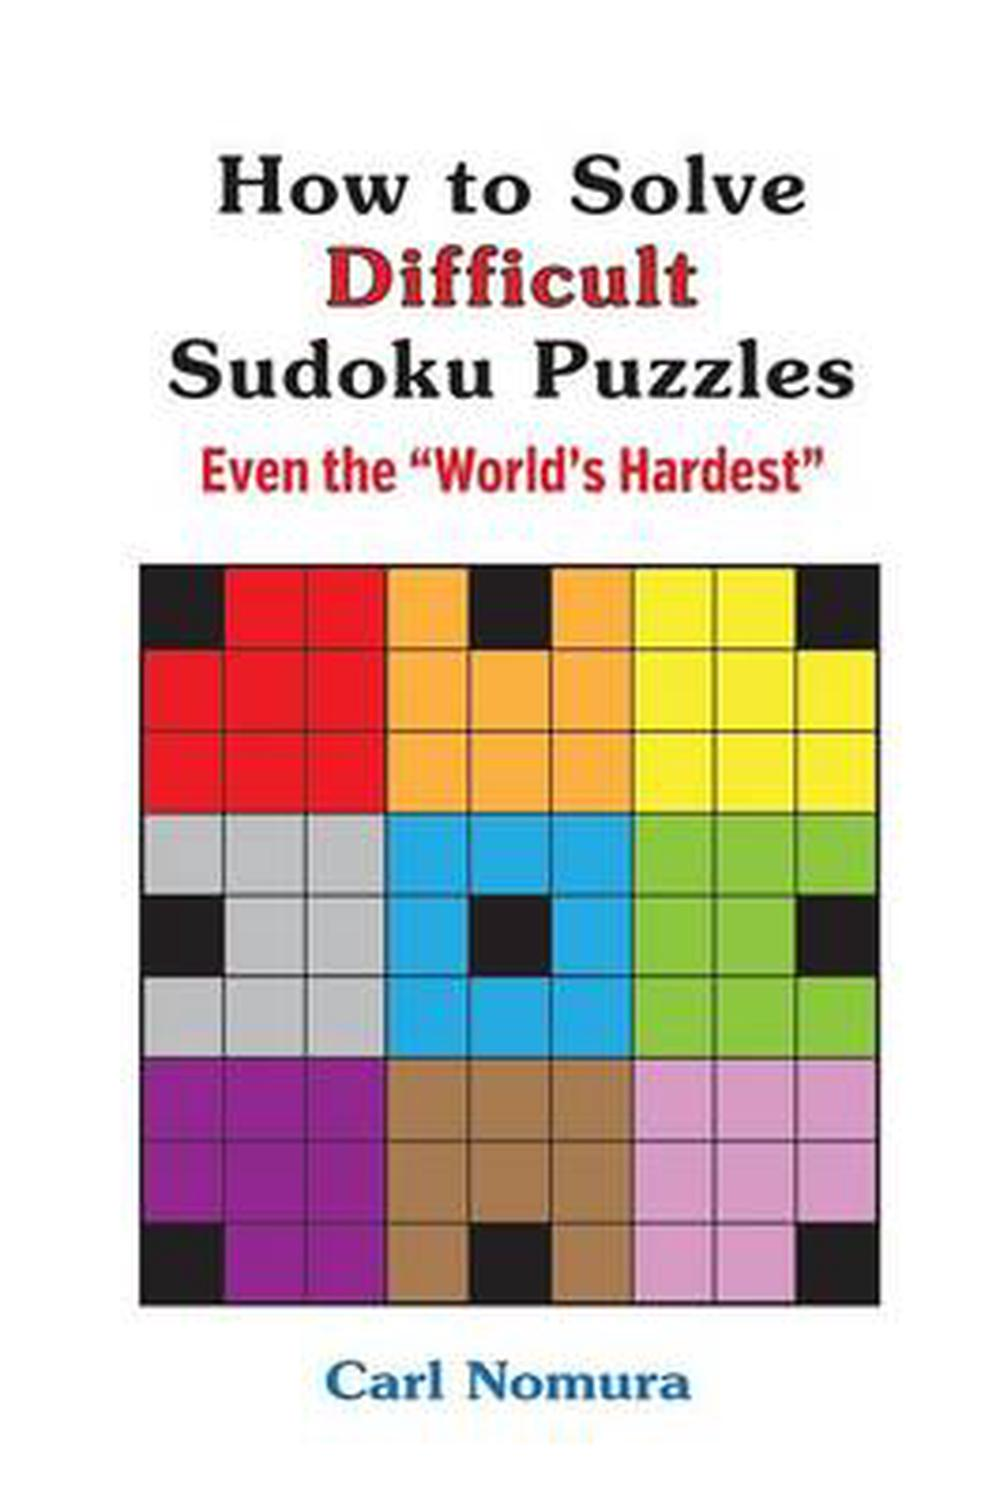 Details about How to Solve Difficult Sudoku Puzzles: Even the World's  Hardest by Carl Nomura (